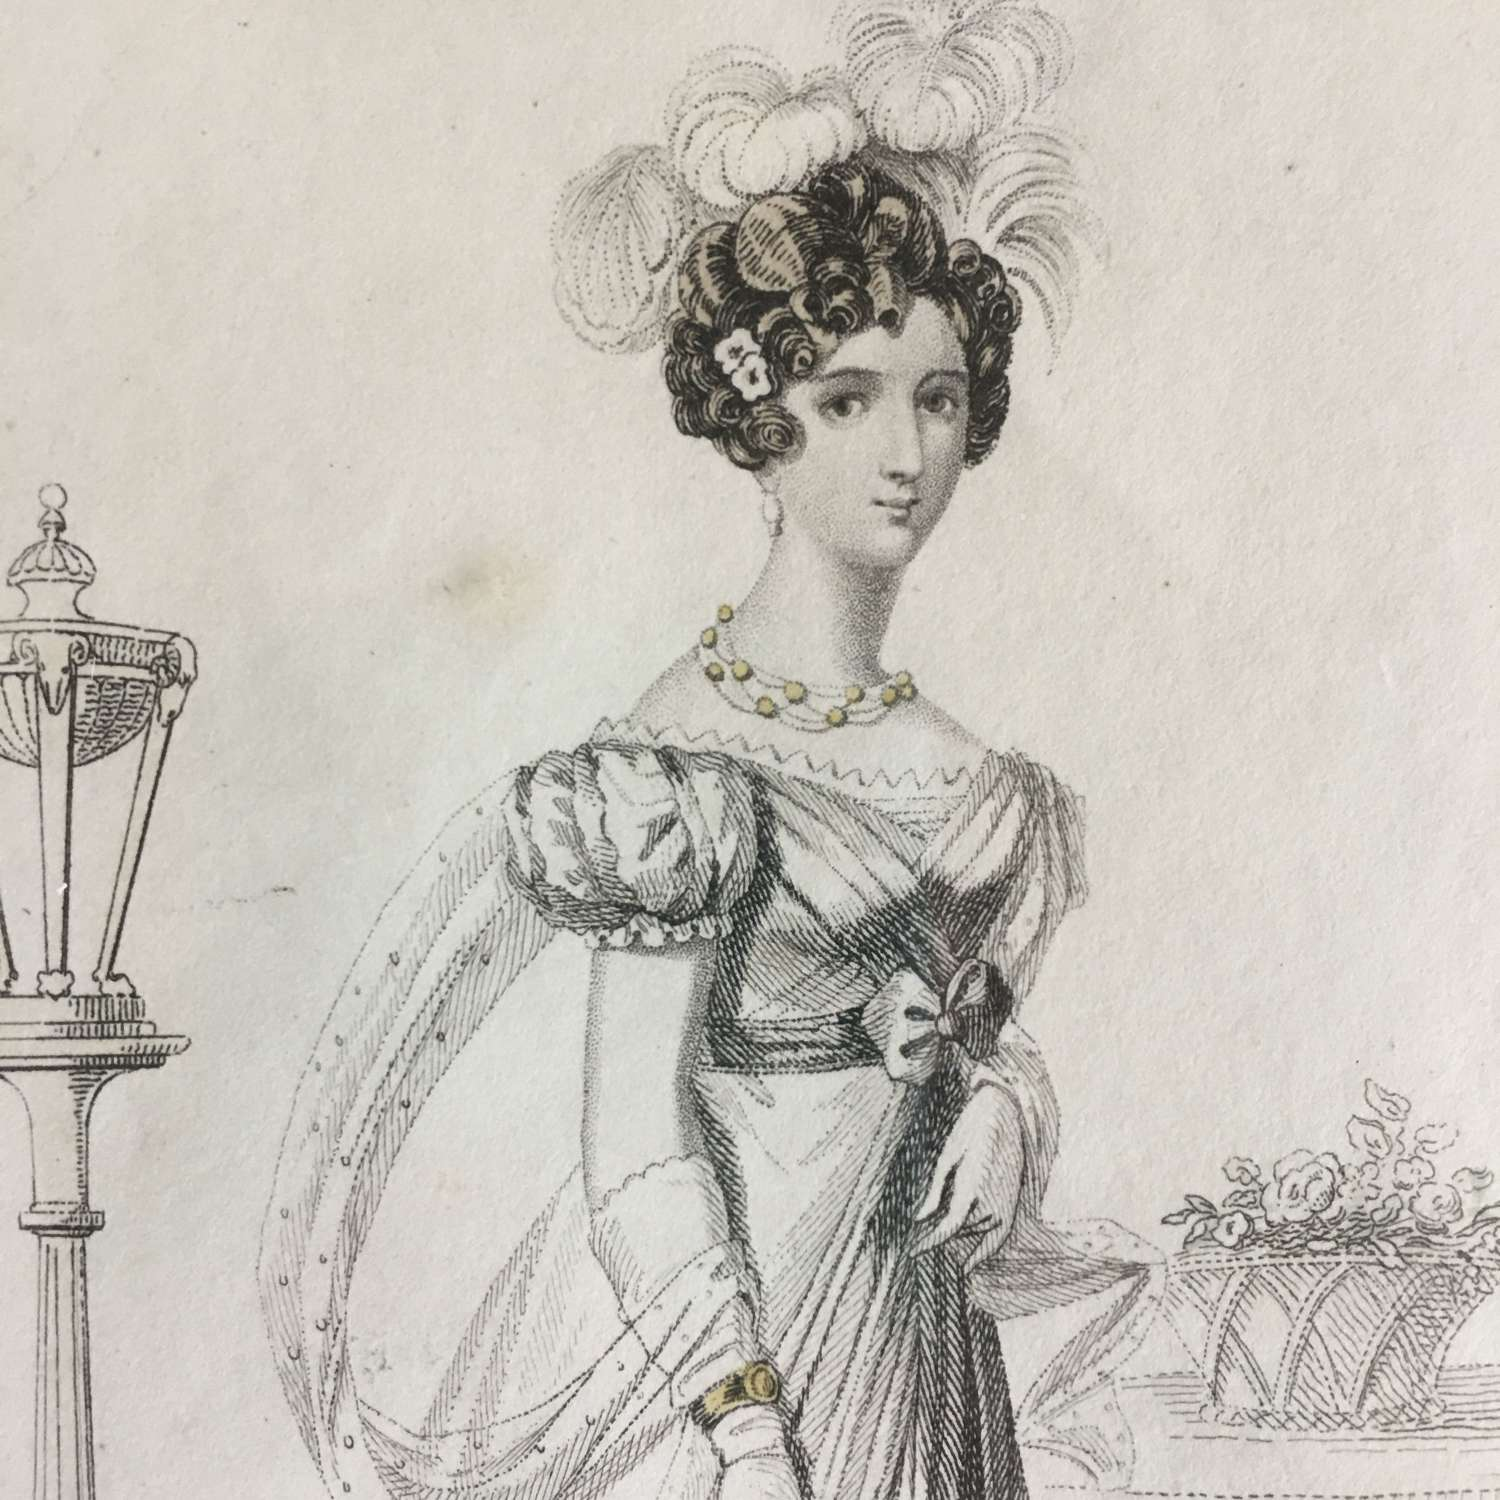 1825 Print of Lady in 'Evening Full Dress'